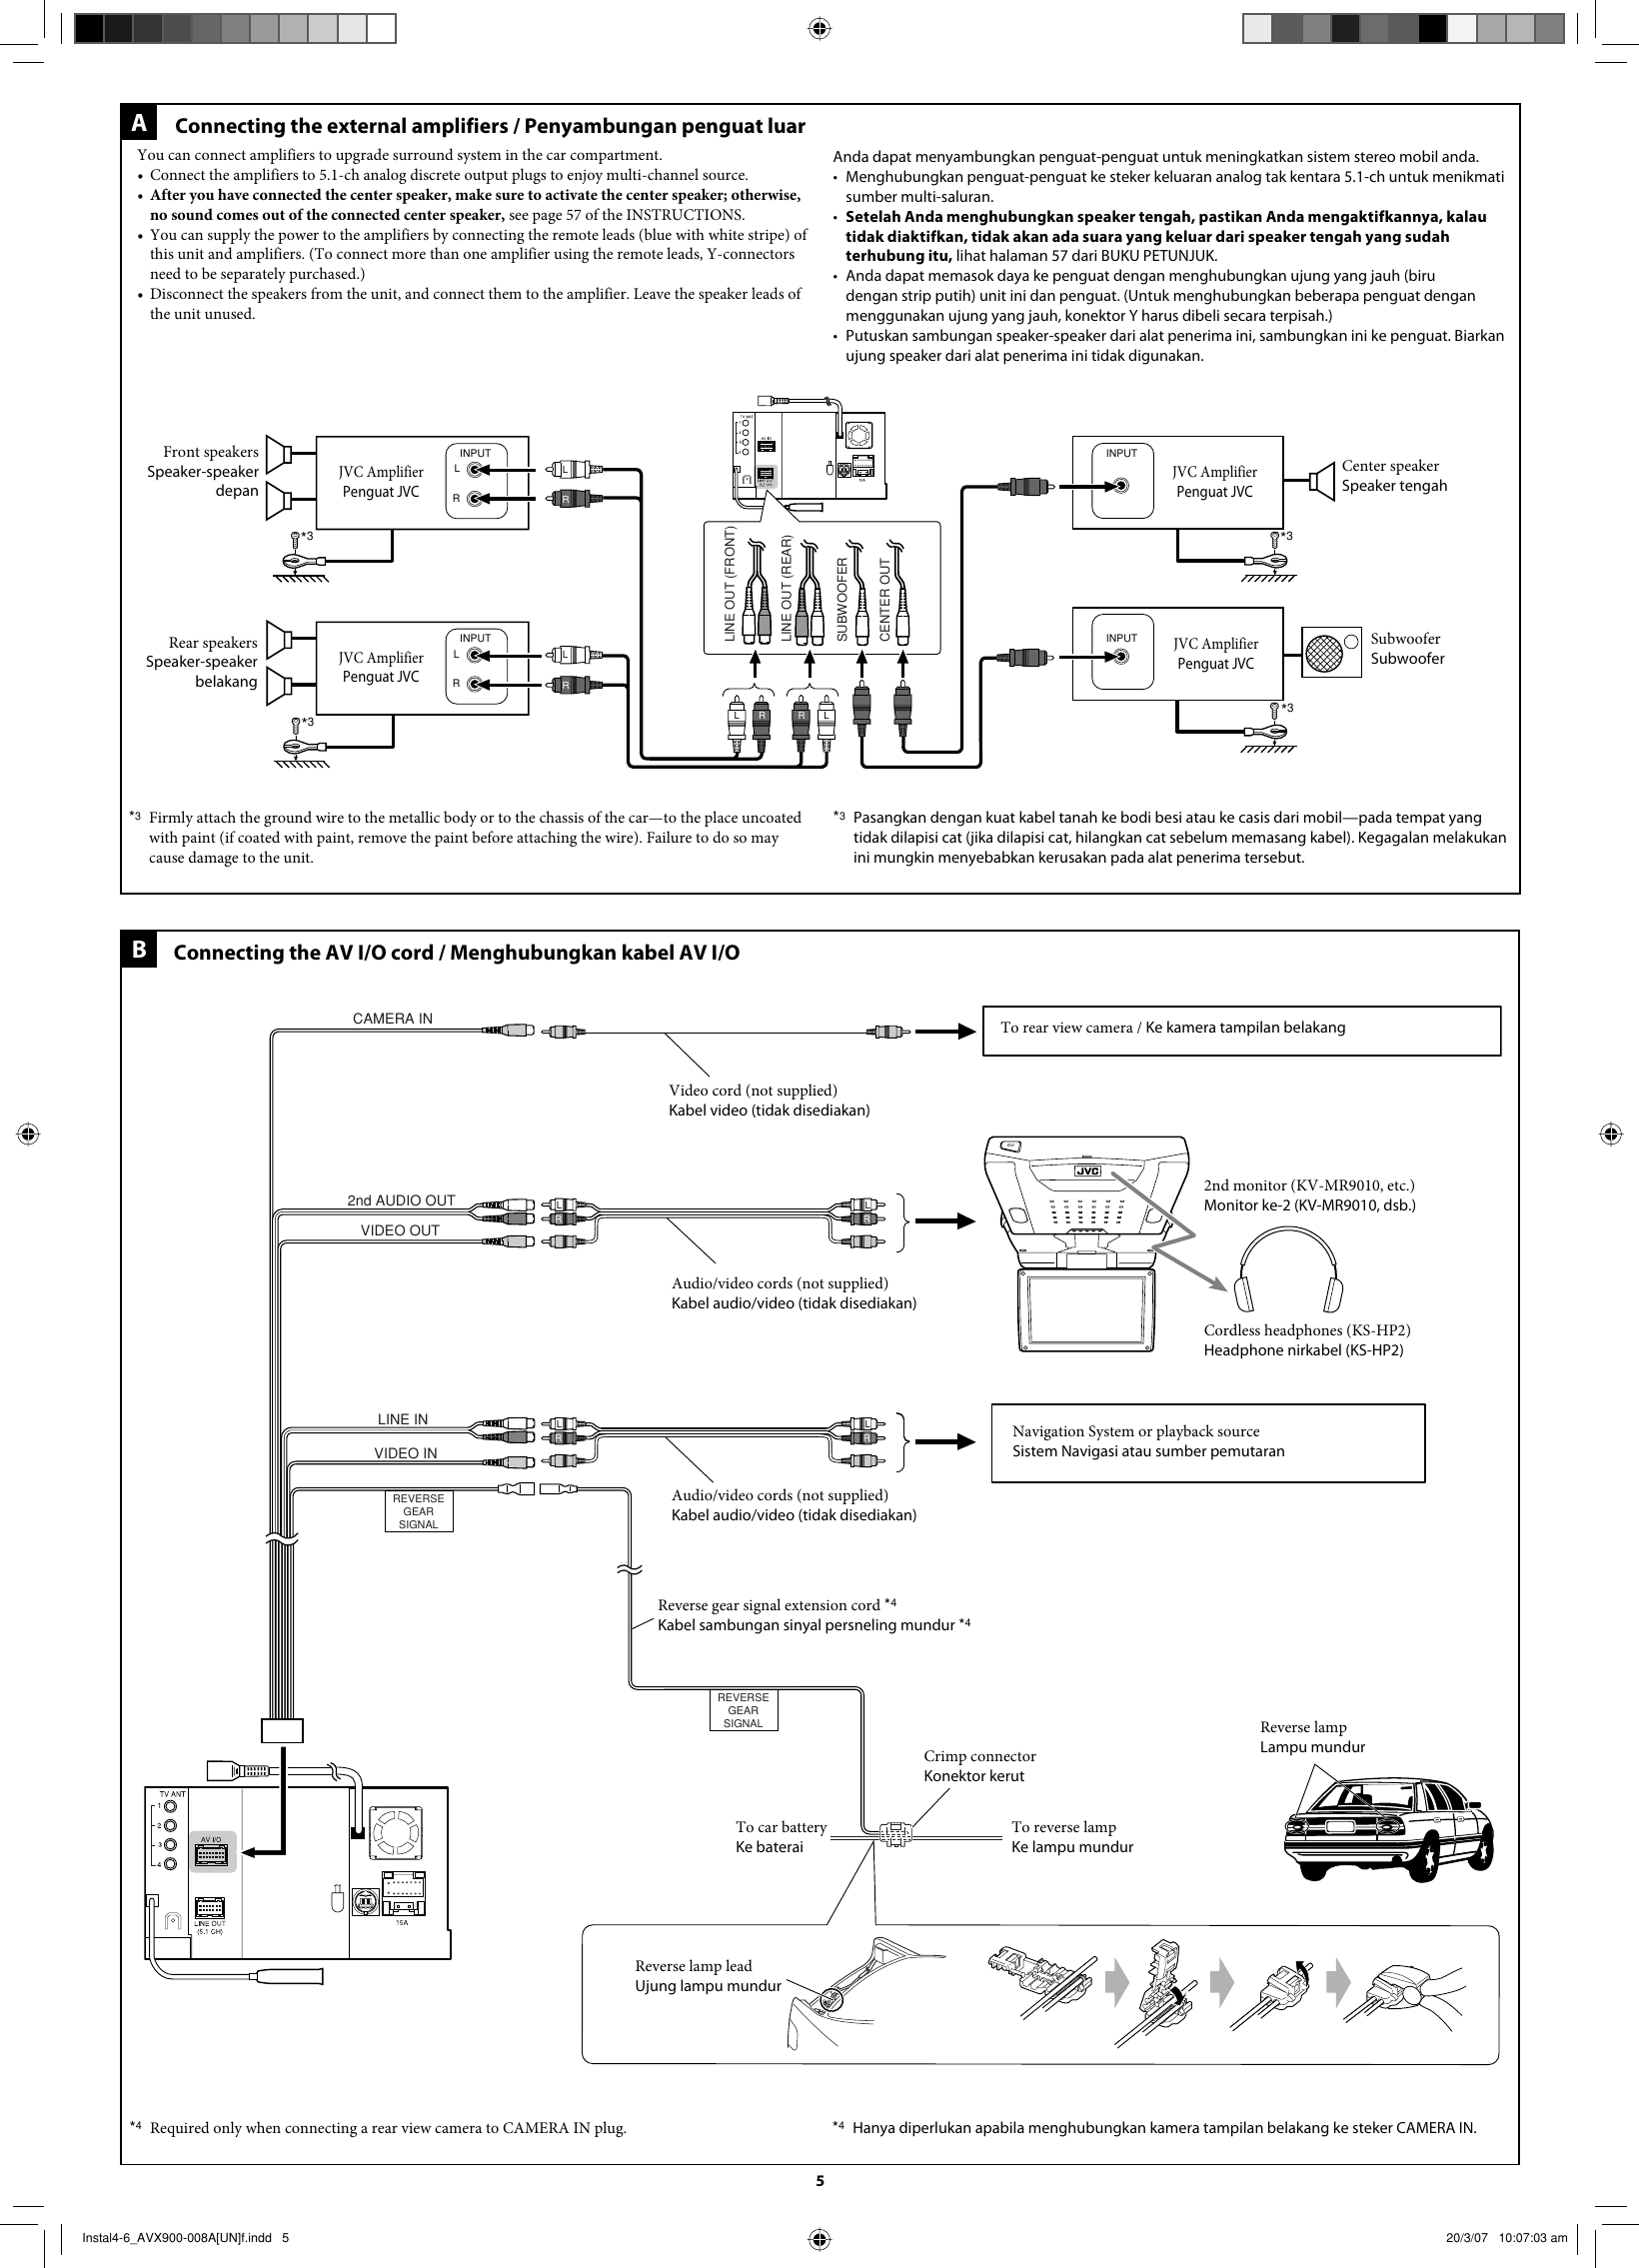 Jvc Kw Avx900un Installation User Manual Lvt1670 008a Avx 900 Wiring Diagram Page 5 Of 6